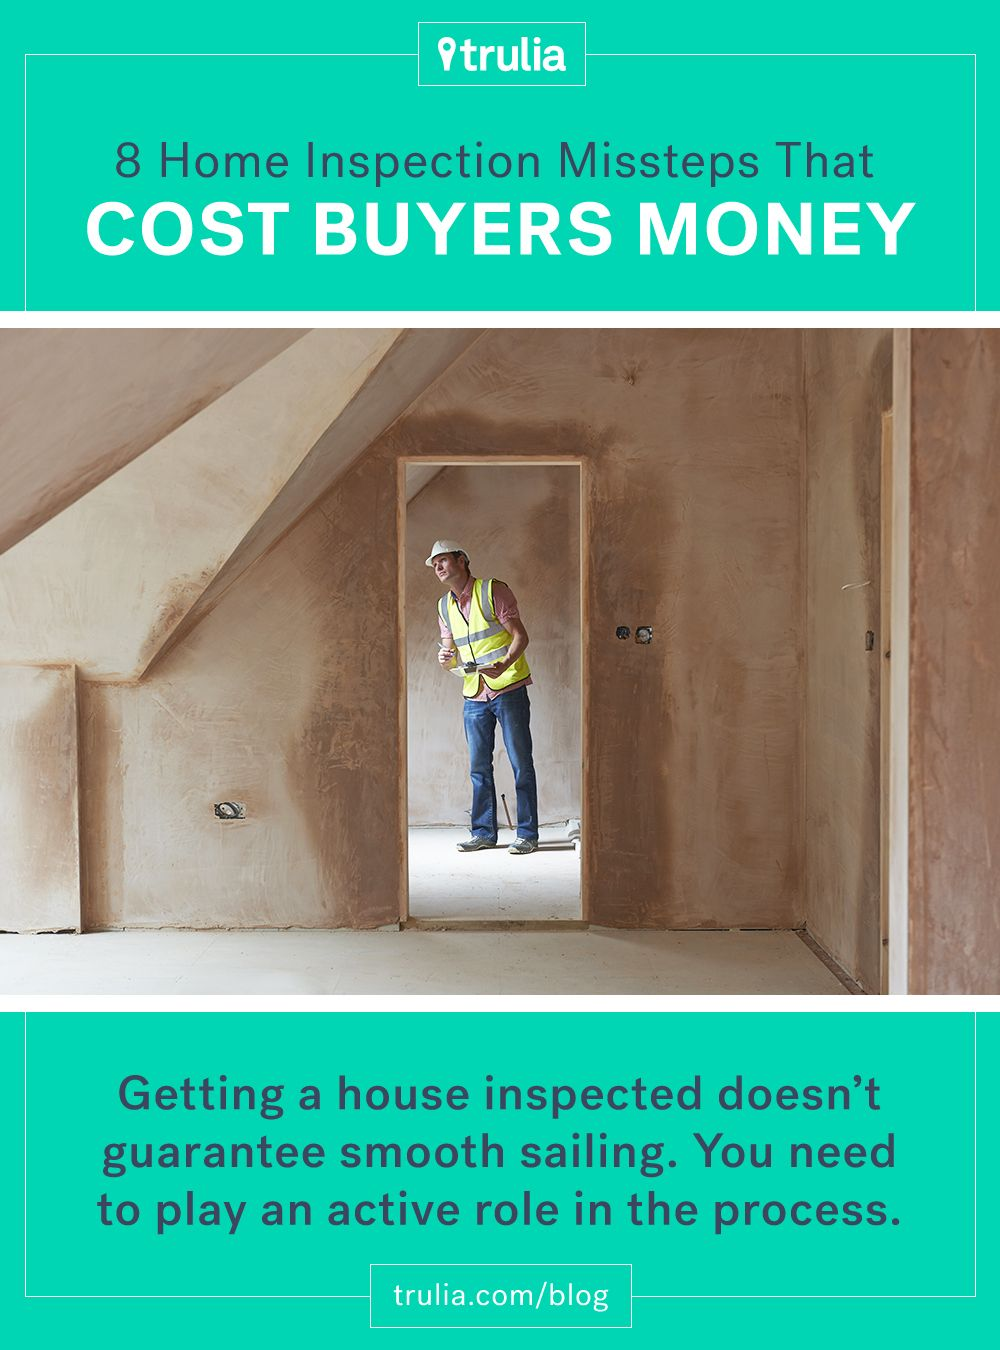 8 Home Inspection Tips to Save Buyers Money - Real Estate 101 ... Home Inspection Tips For Buyers on home packing tips, home finishing tips, real estate tips, home storage tips, landscaping tips, home insurance tips, home energy tips, home safety tips, cleaning tips, home fitness tips, home title insurance, home security tips, home business tips, home management tips, home estate, home buying checklist, home home, home design tips, home construction tips, home care tips,